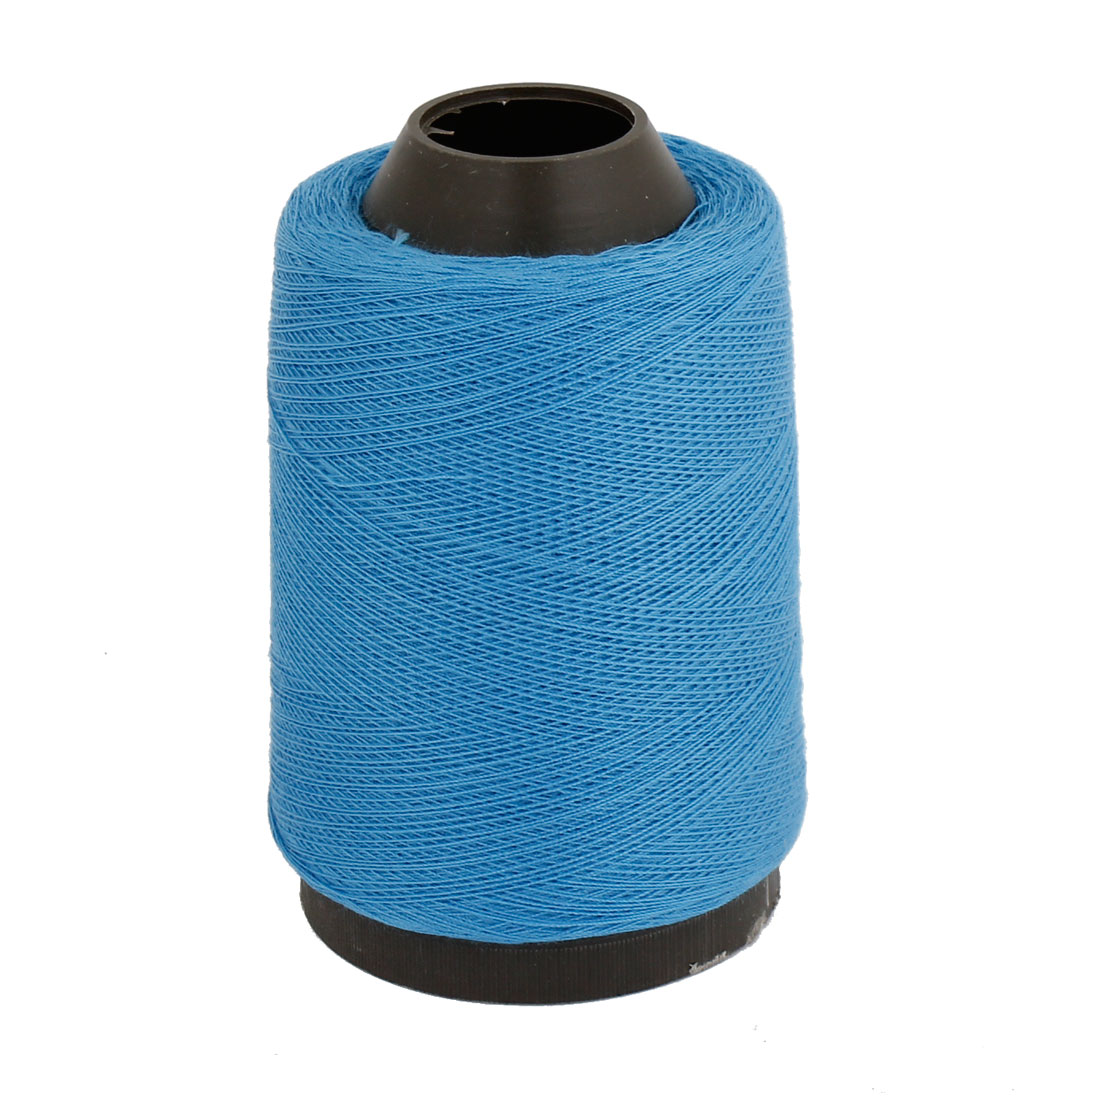 Household Hand Machine String Spool Cotton Sewing Threaded Blue